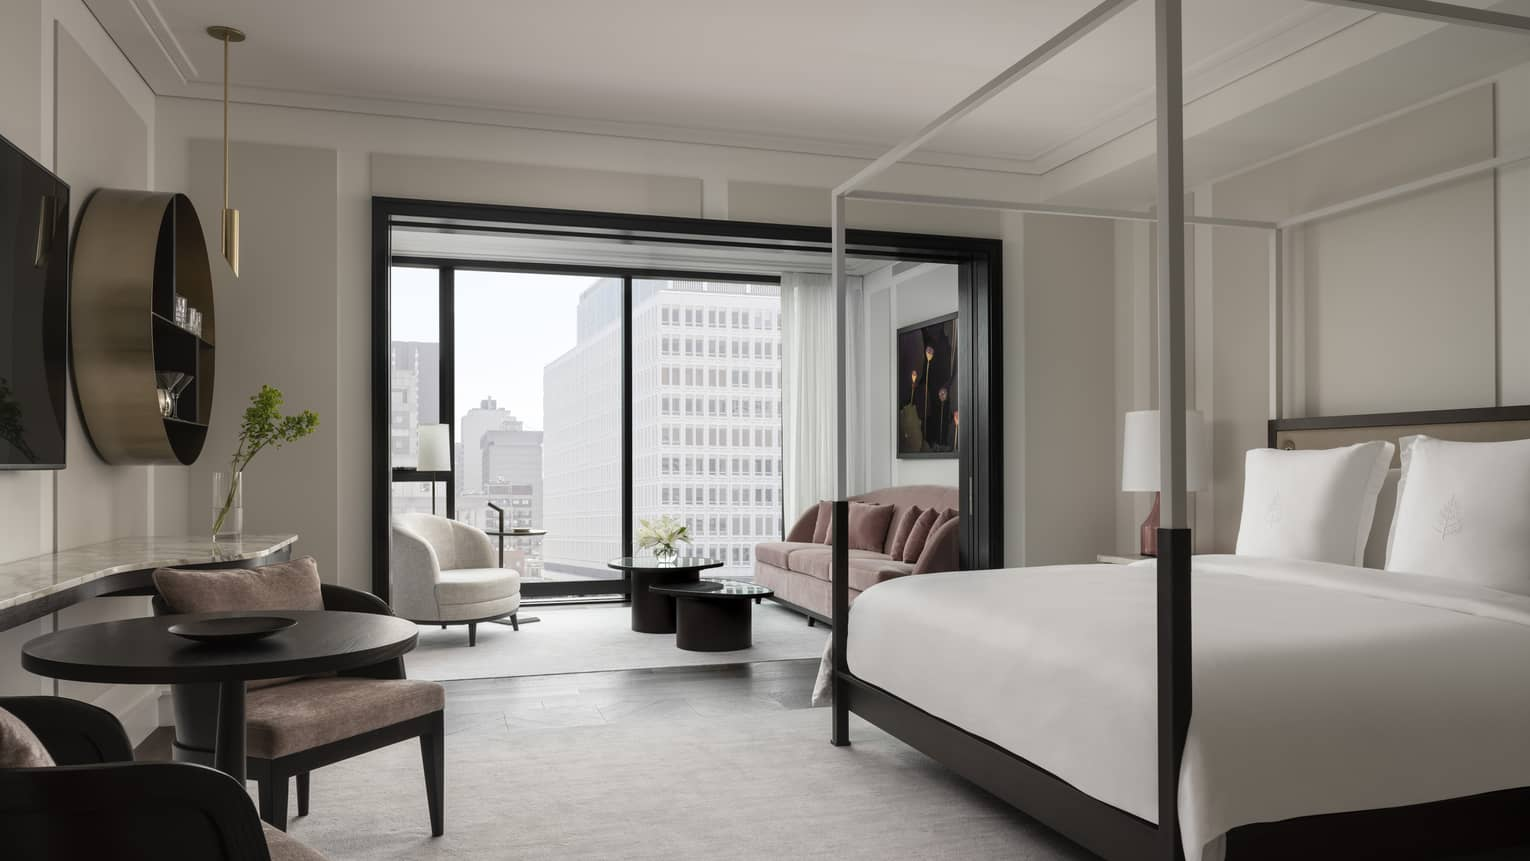 Chic, modern guest room with neutral decor and black trim, floor-to-ceiling window